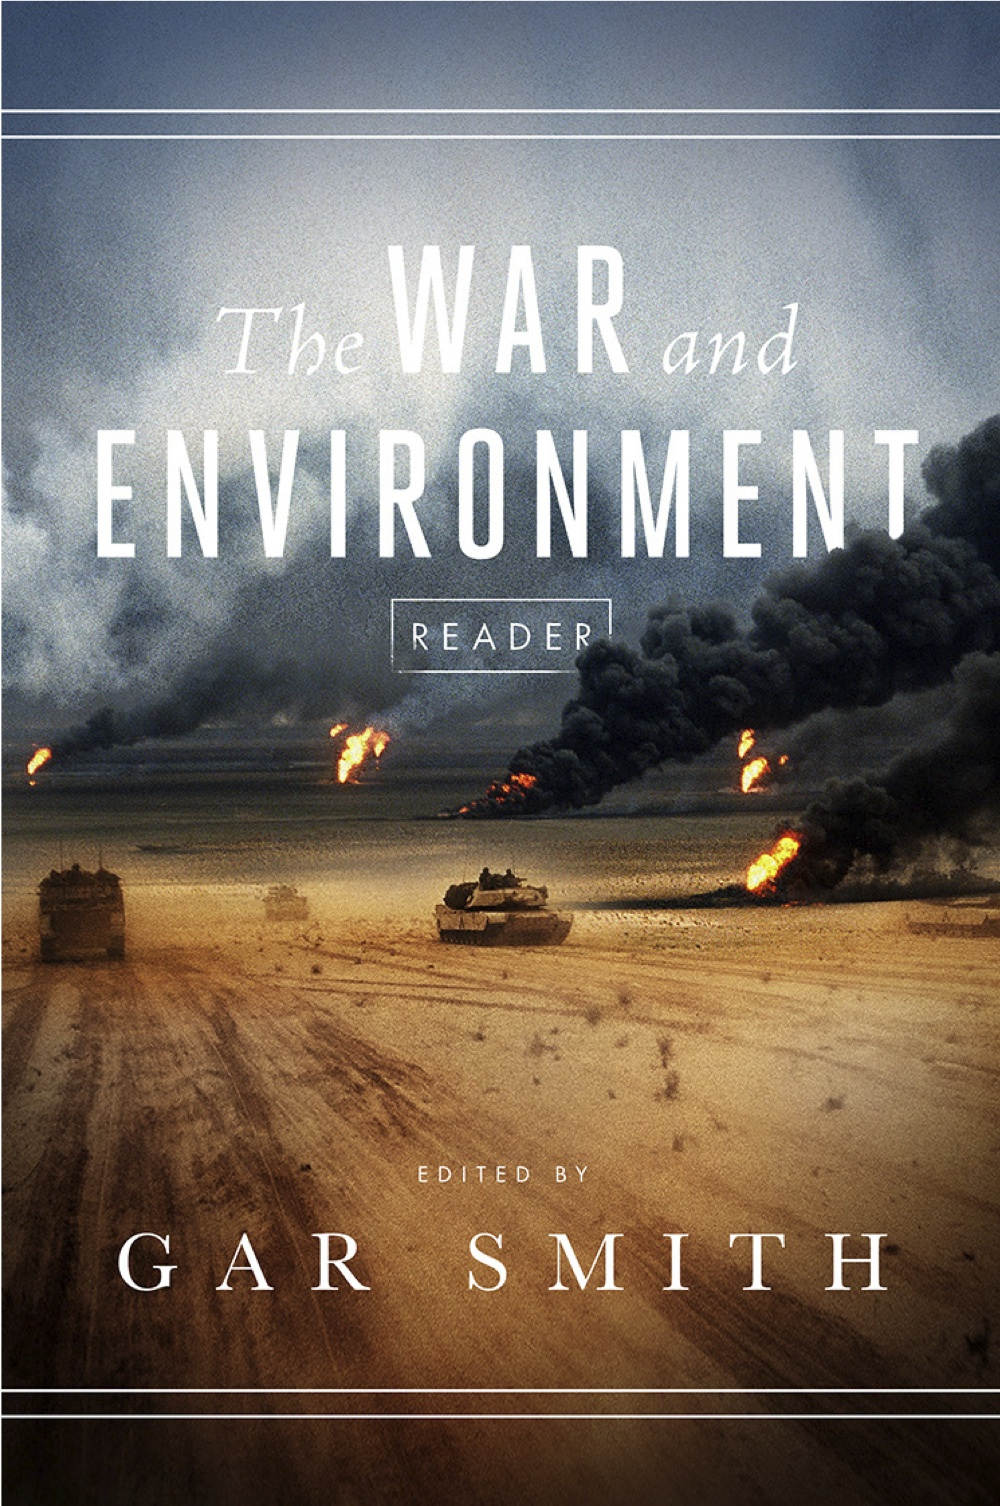 Non-Fiction: The War and Environment Reader by Gar Smith